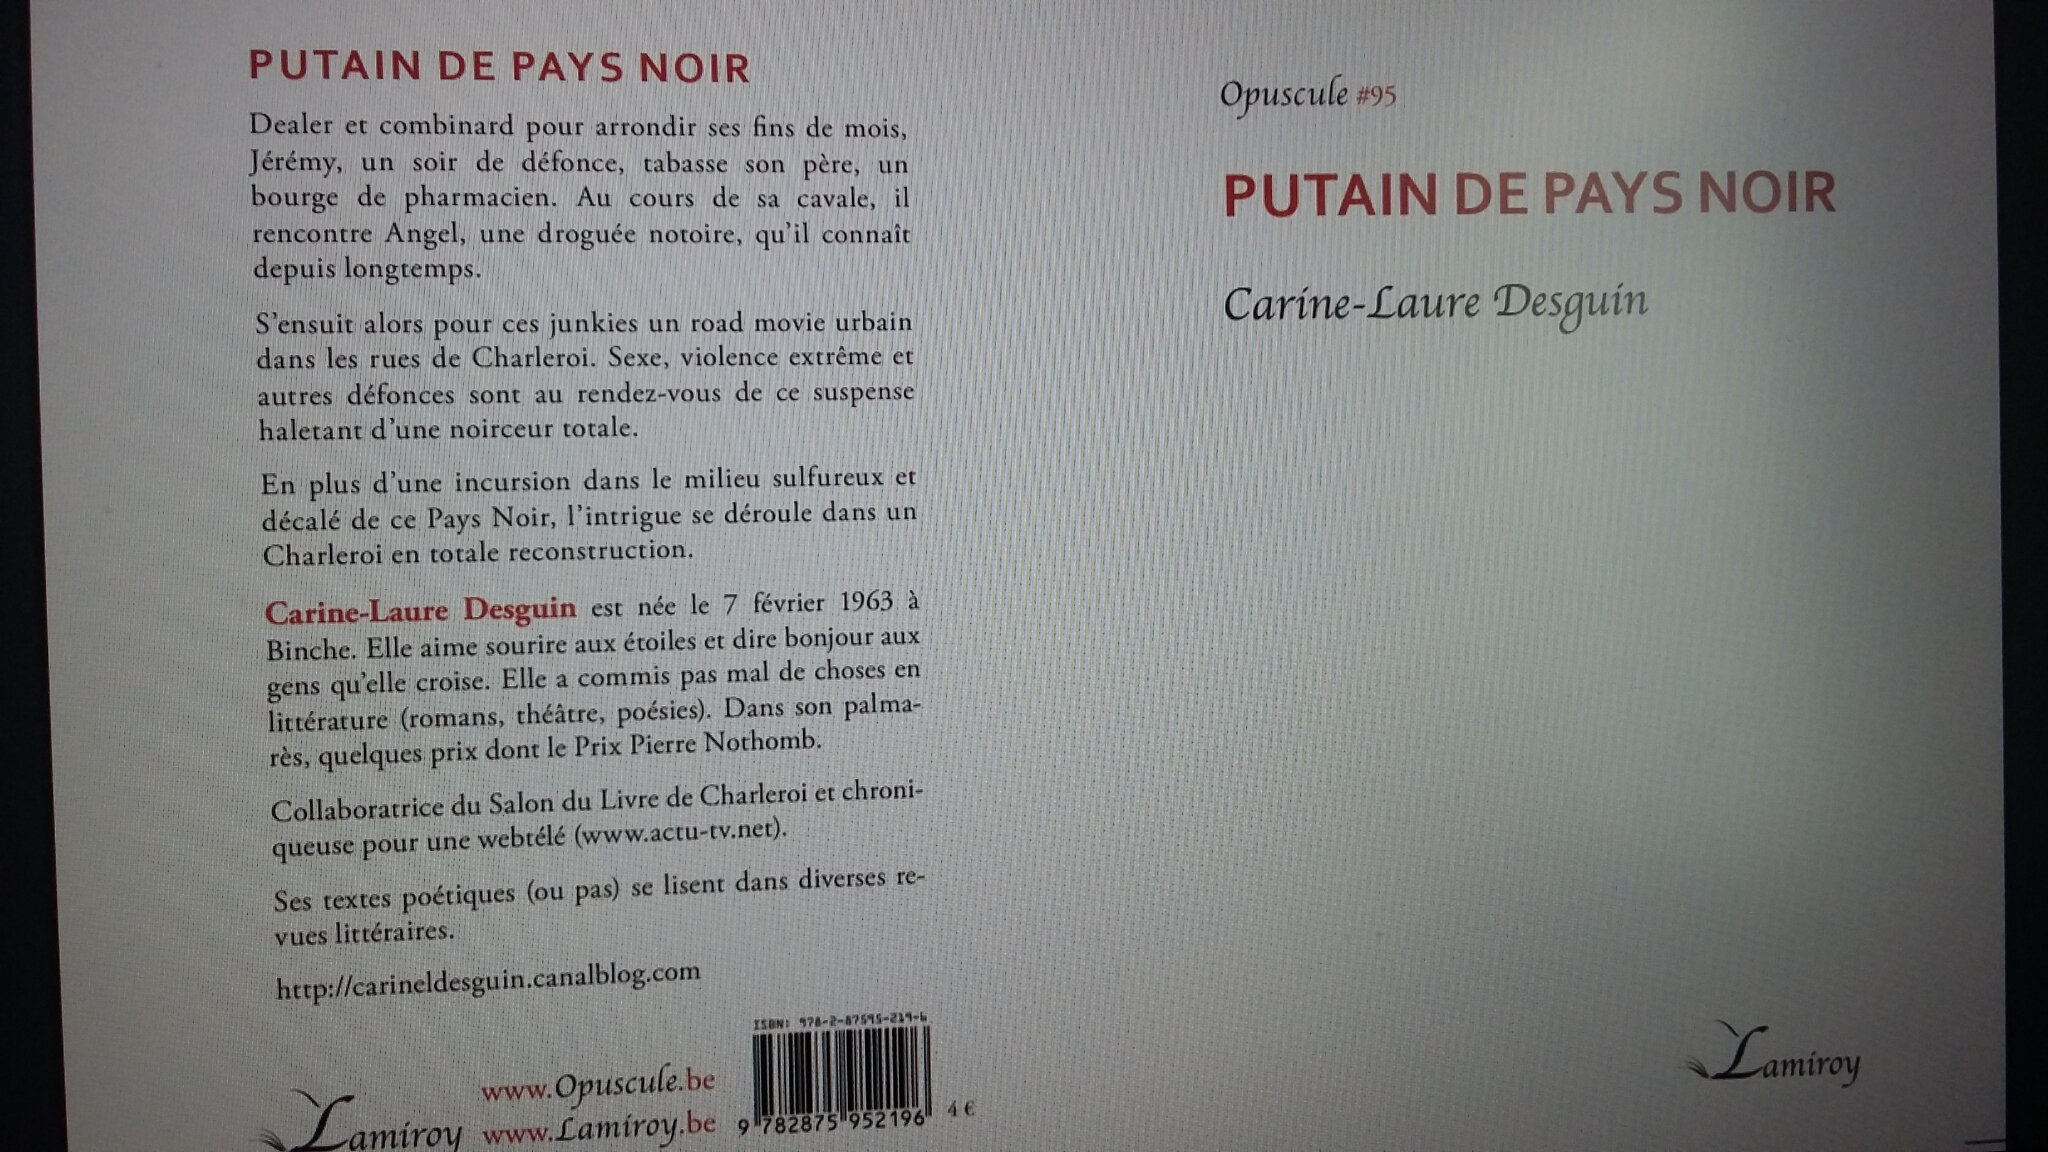 PUTAIN DE PAYS NOIR, Editions Lamiroy (collection Opuscules)